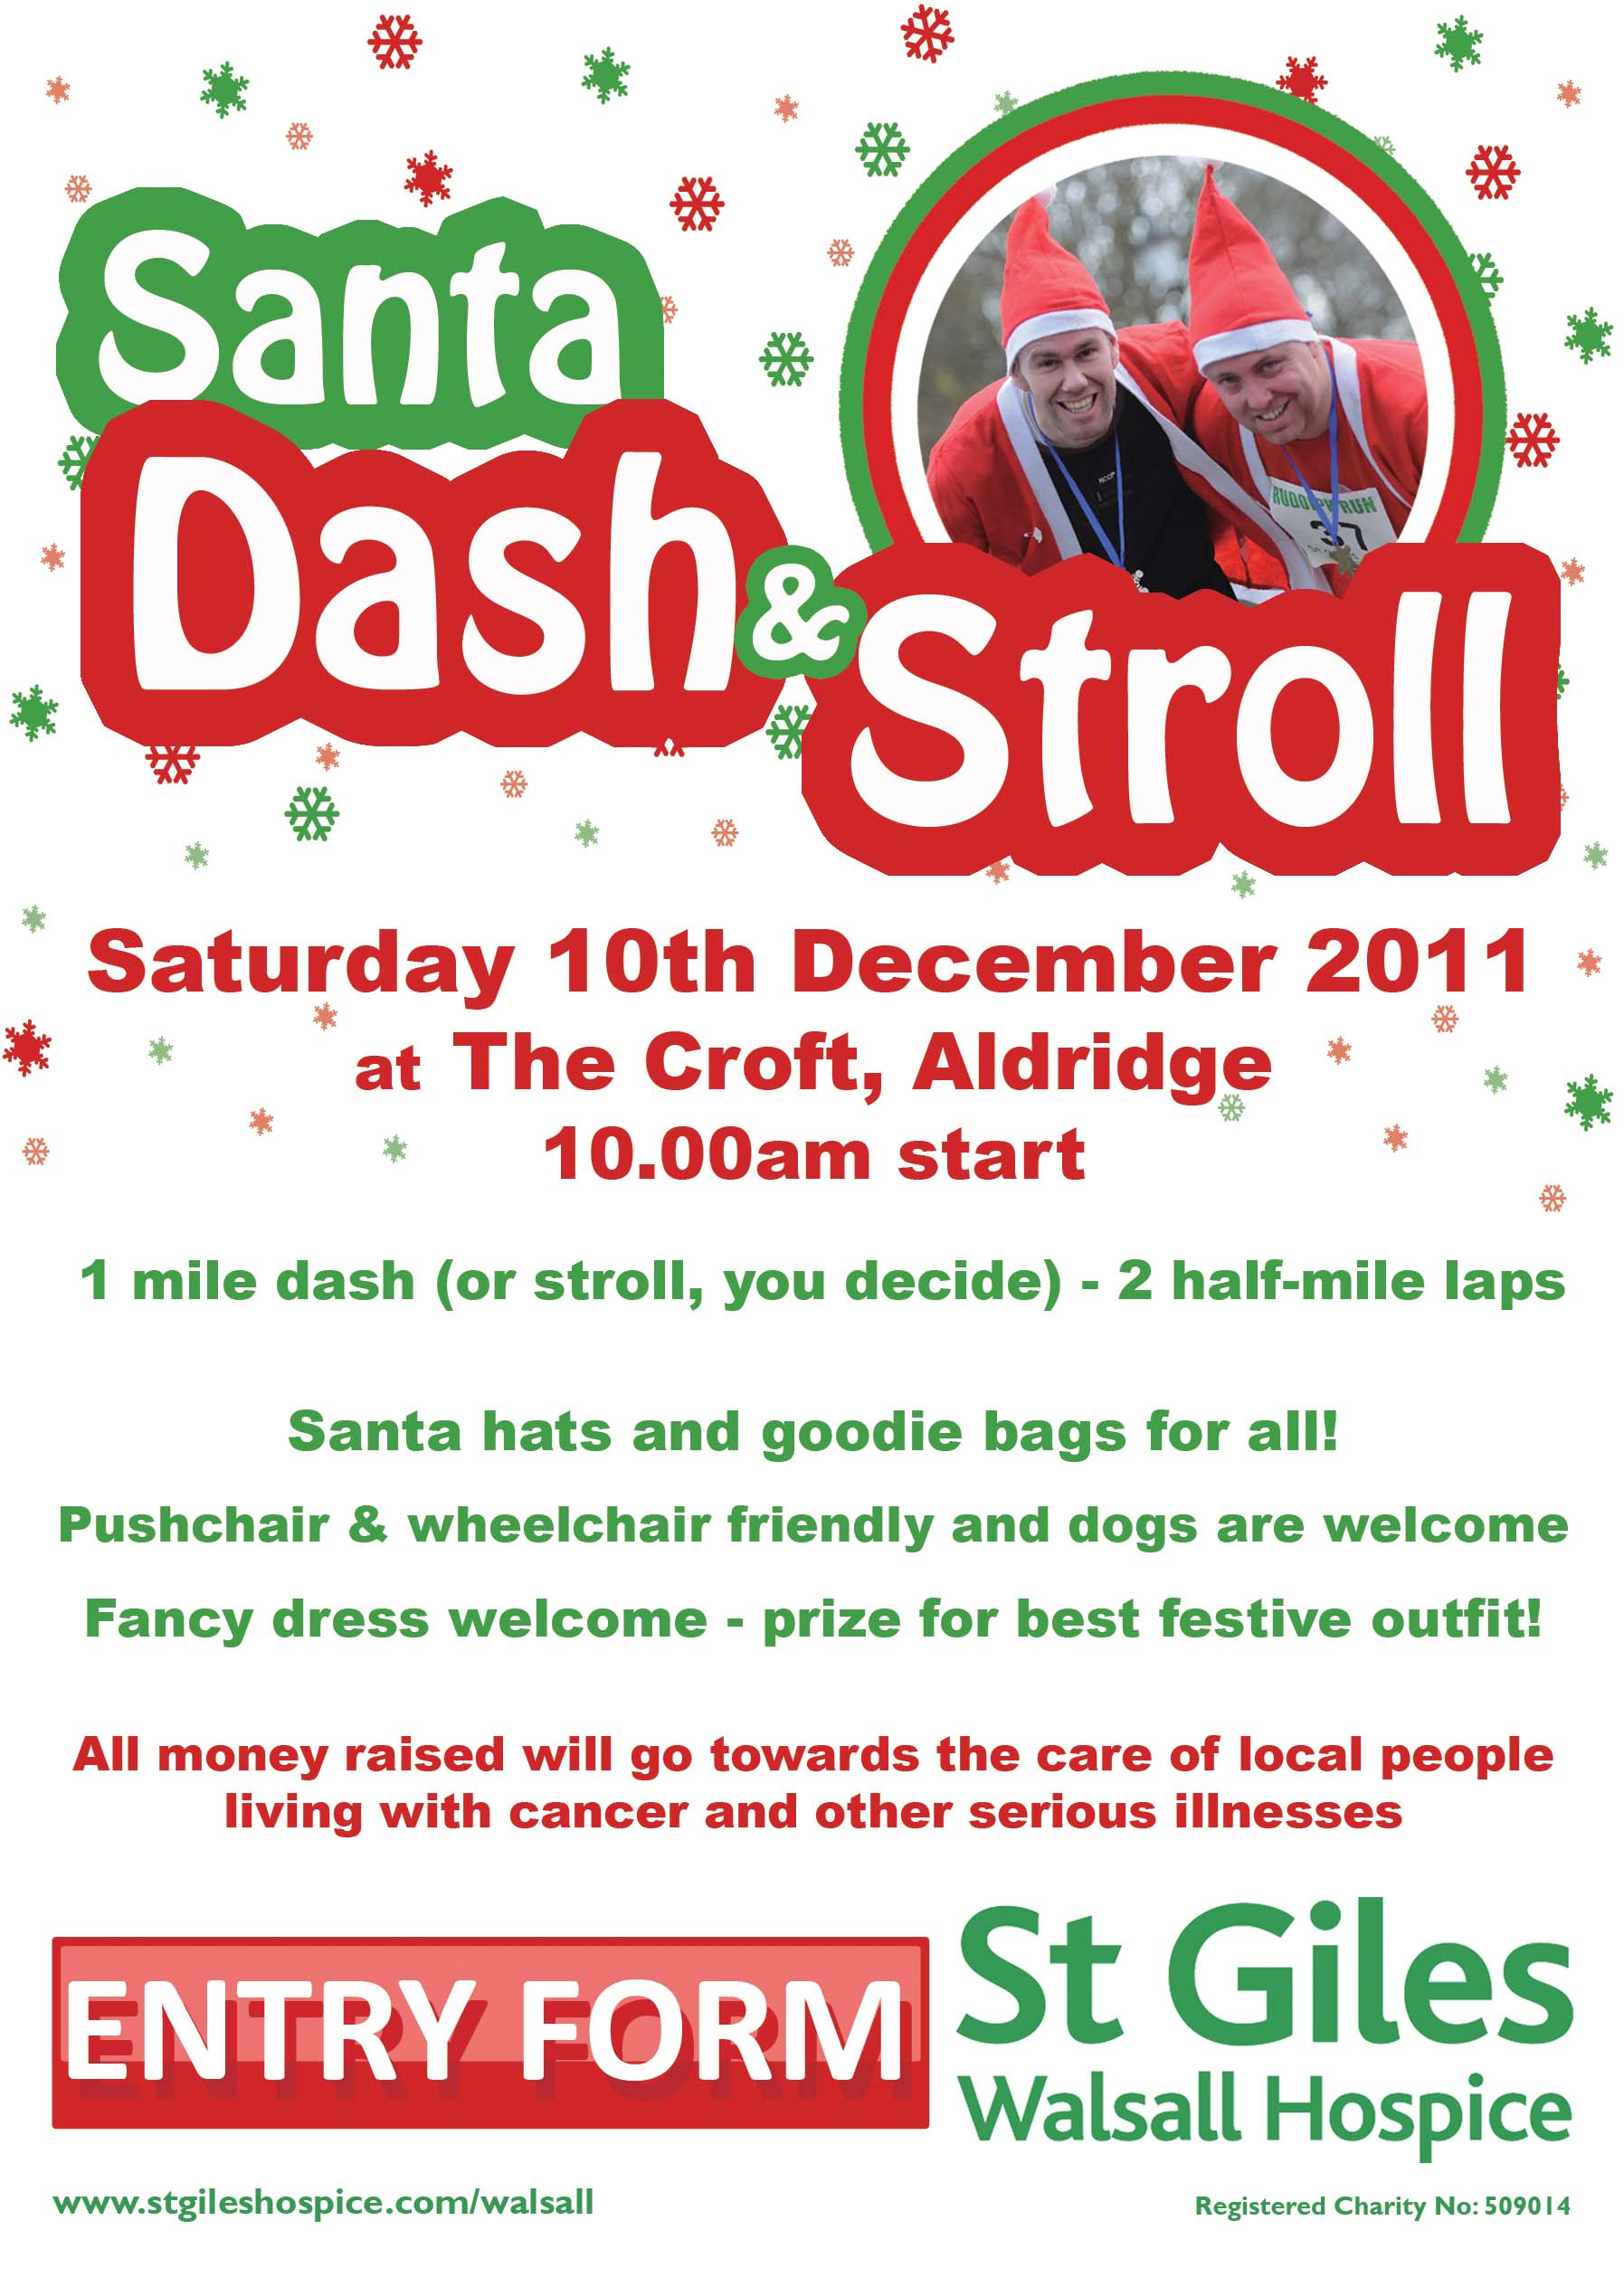 Santa Dash and Stroll being organised by St Giles Walsall Hospice as part of Aldridge Christmas Festivities on Saturday 10 December